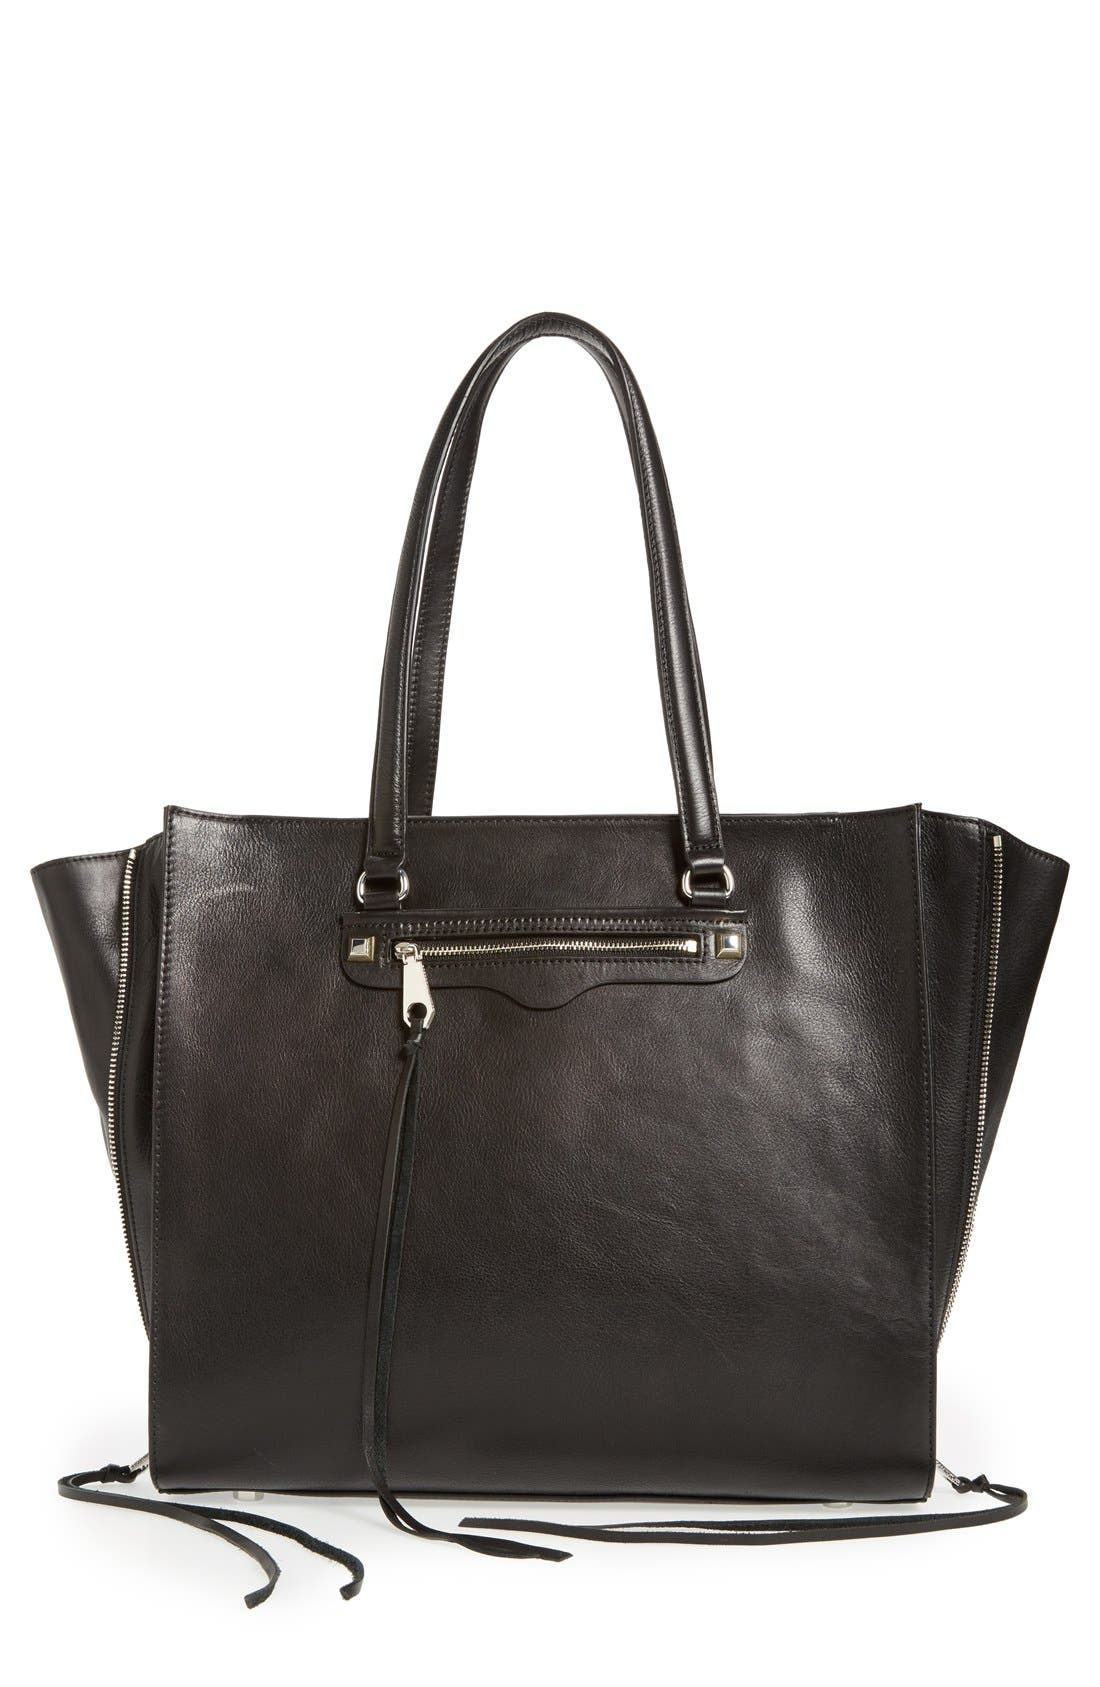 Rebecca Minkoff Always On Regan Tote